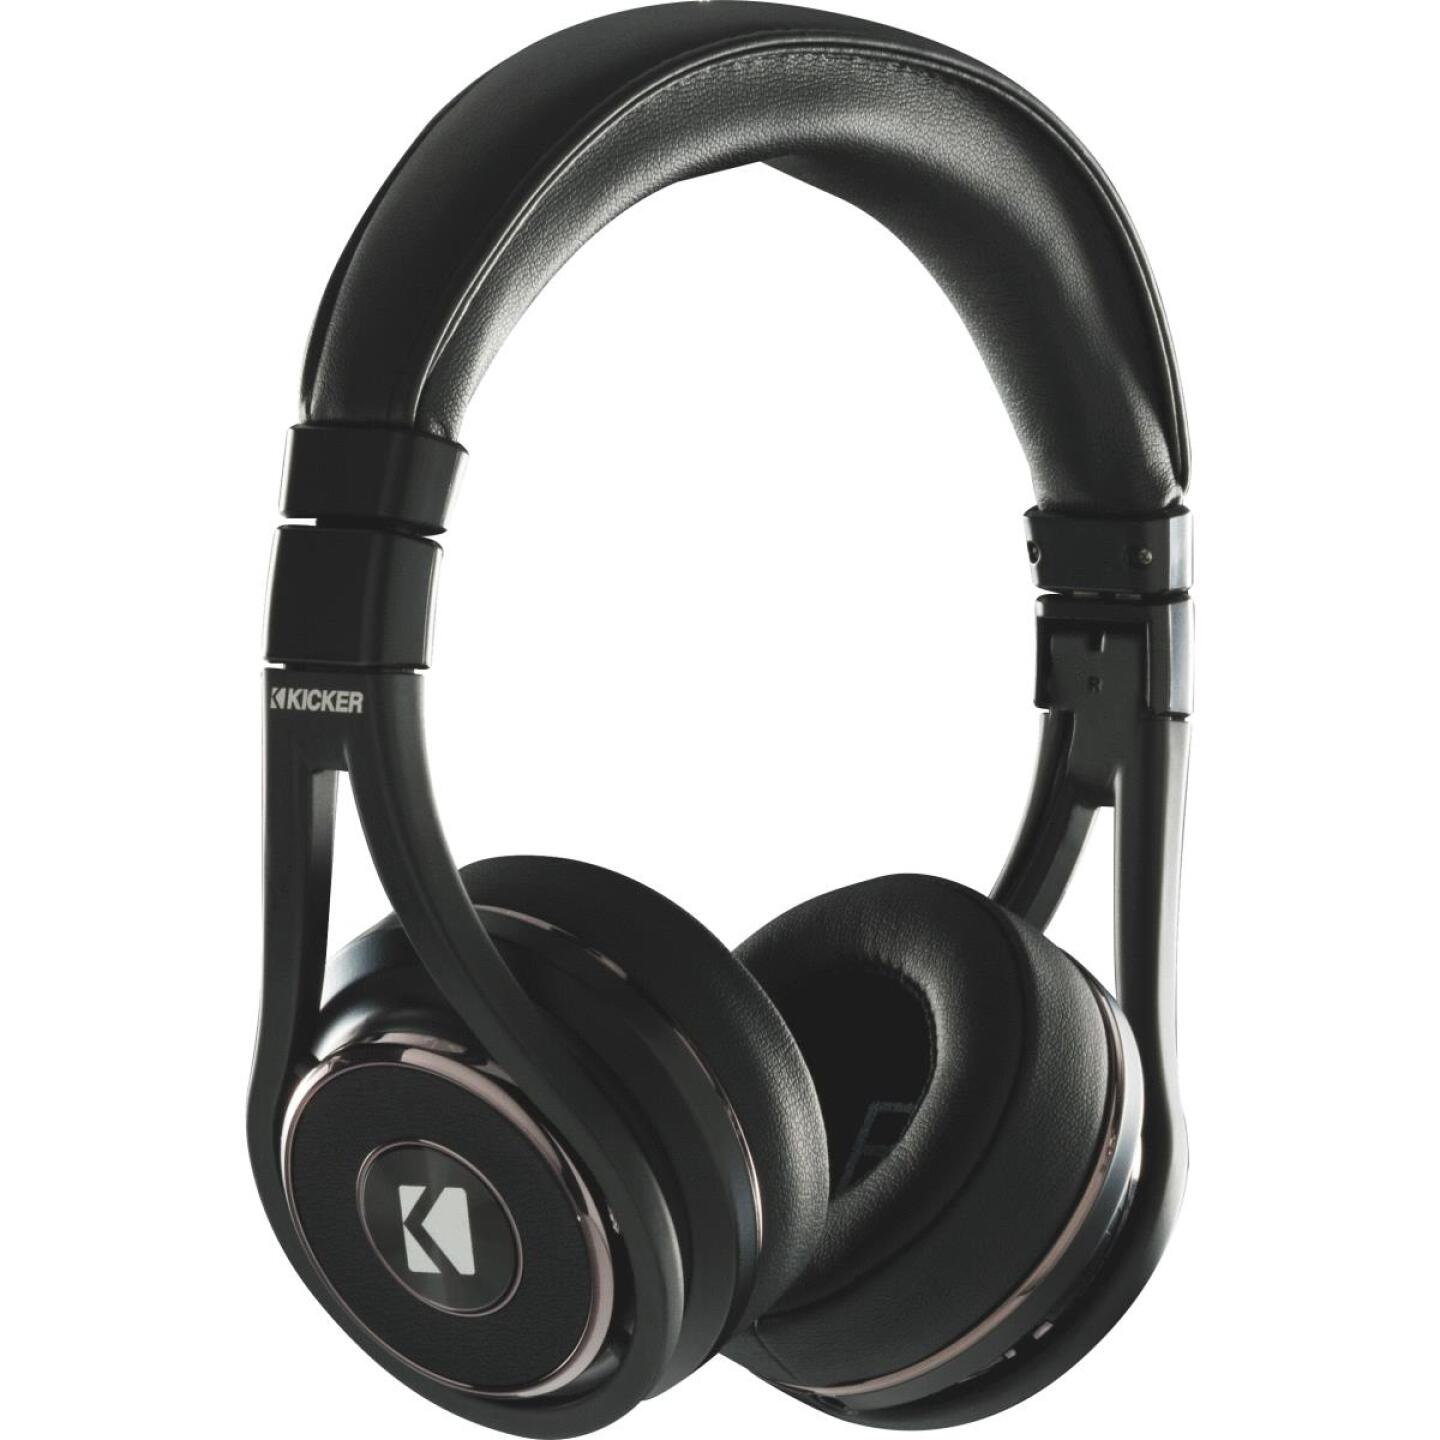 Kicker CushBT Bluetooth Wireless/Wired Black Headphones Image 1